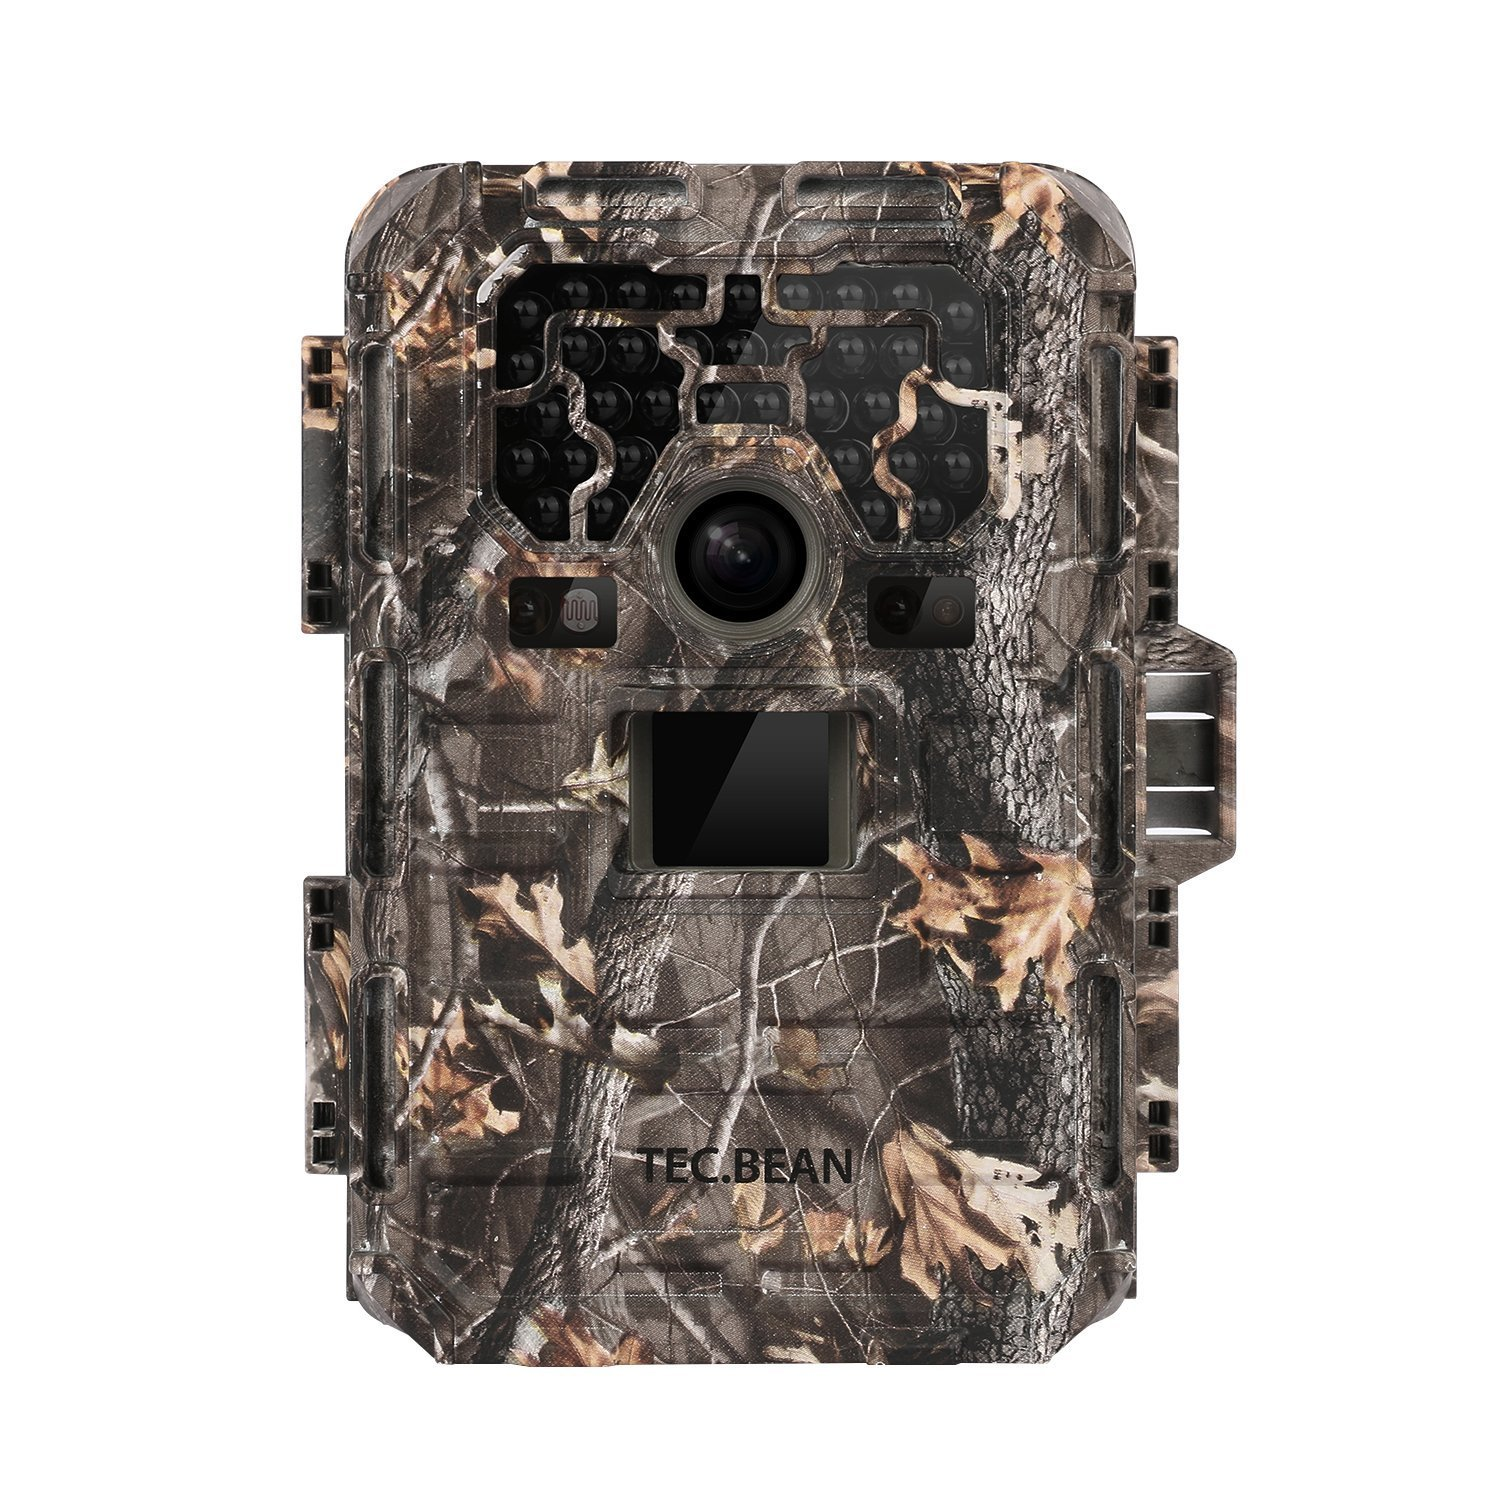 TEC.BEAN DB0826 Trail Game Camera - 12MP 1080P Full HD IP66 Waterproof Hunting Camera with night vision motion activated, SG-009 23M/75ft by TEC.BEAN